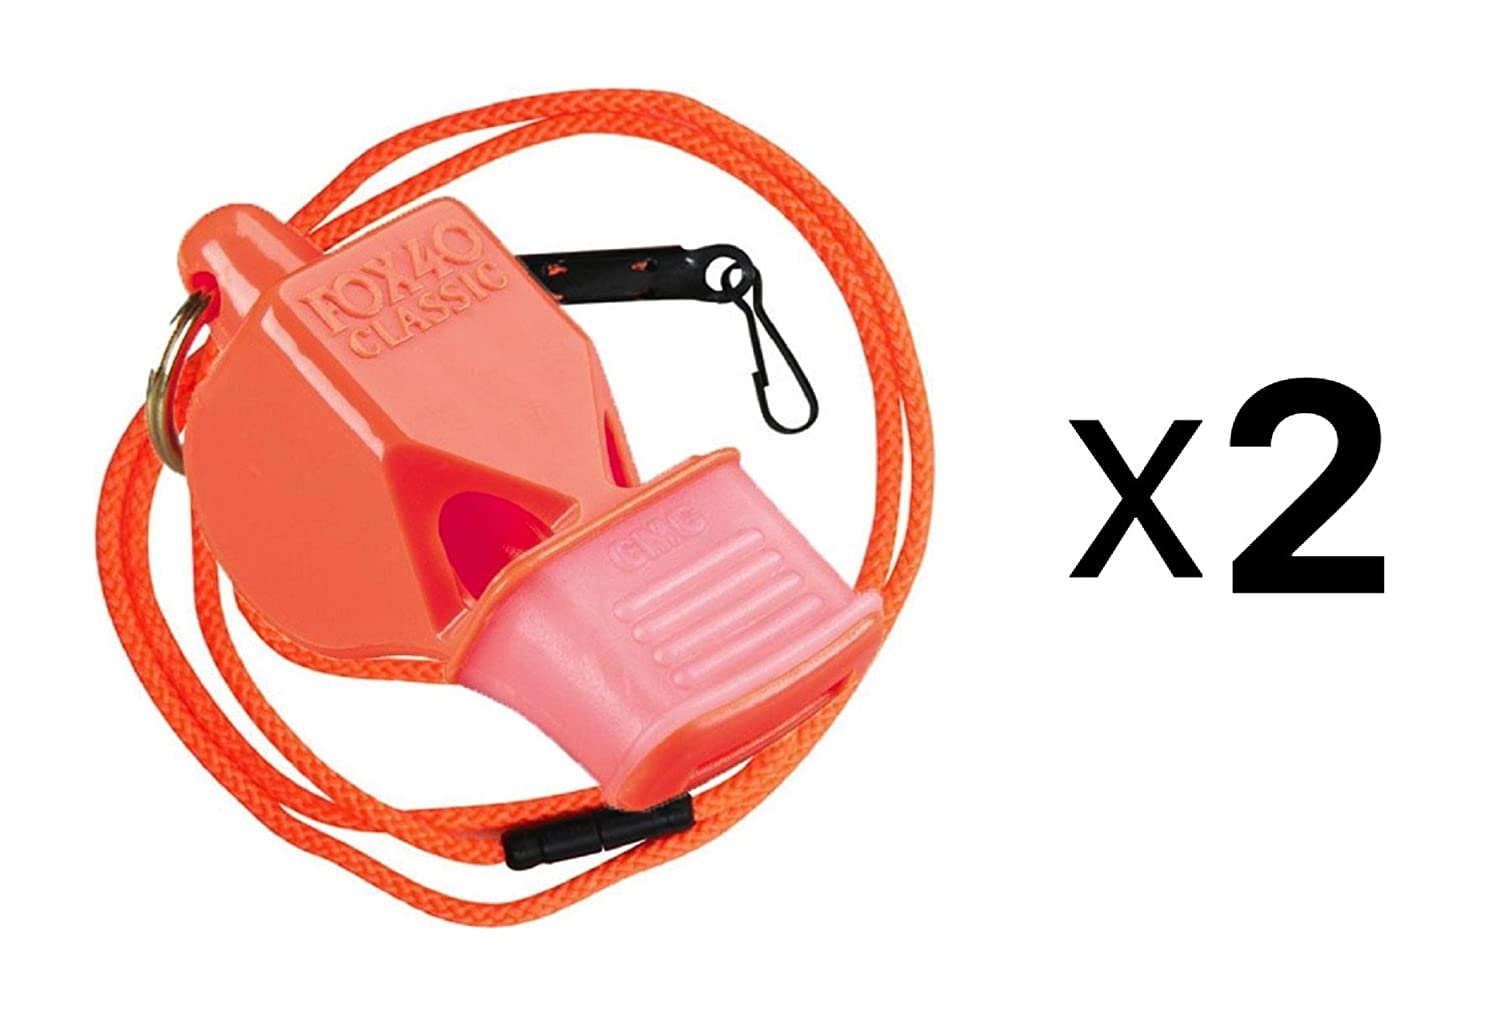 Fox 40 Classic CMG Whistle & Lanyard Referee Safety Alert, Orange (2-Pack) LEPUSHPDJ6443